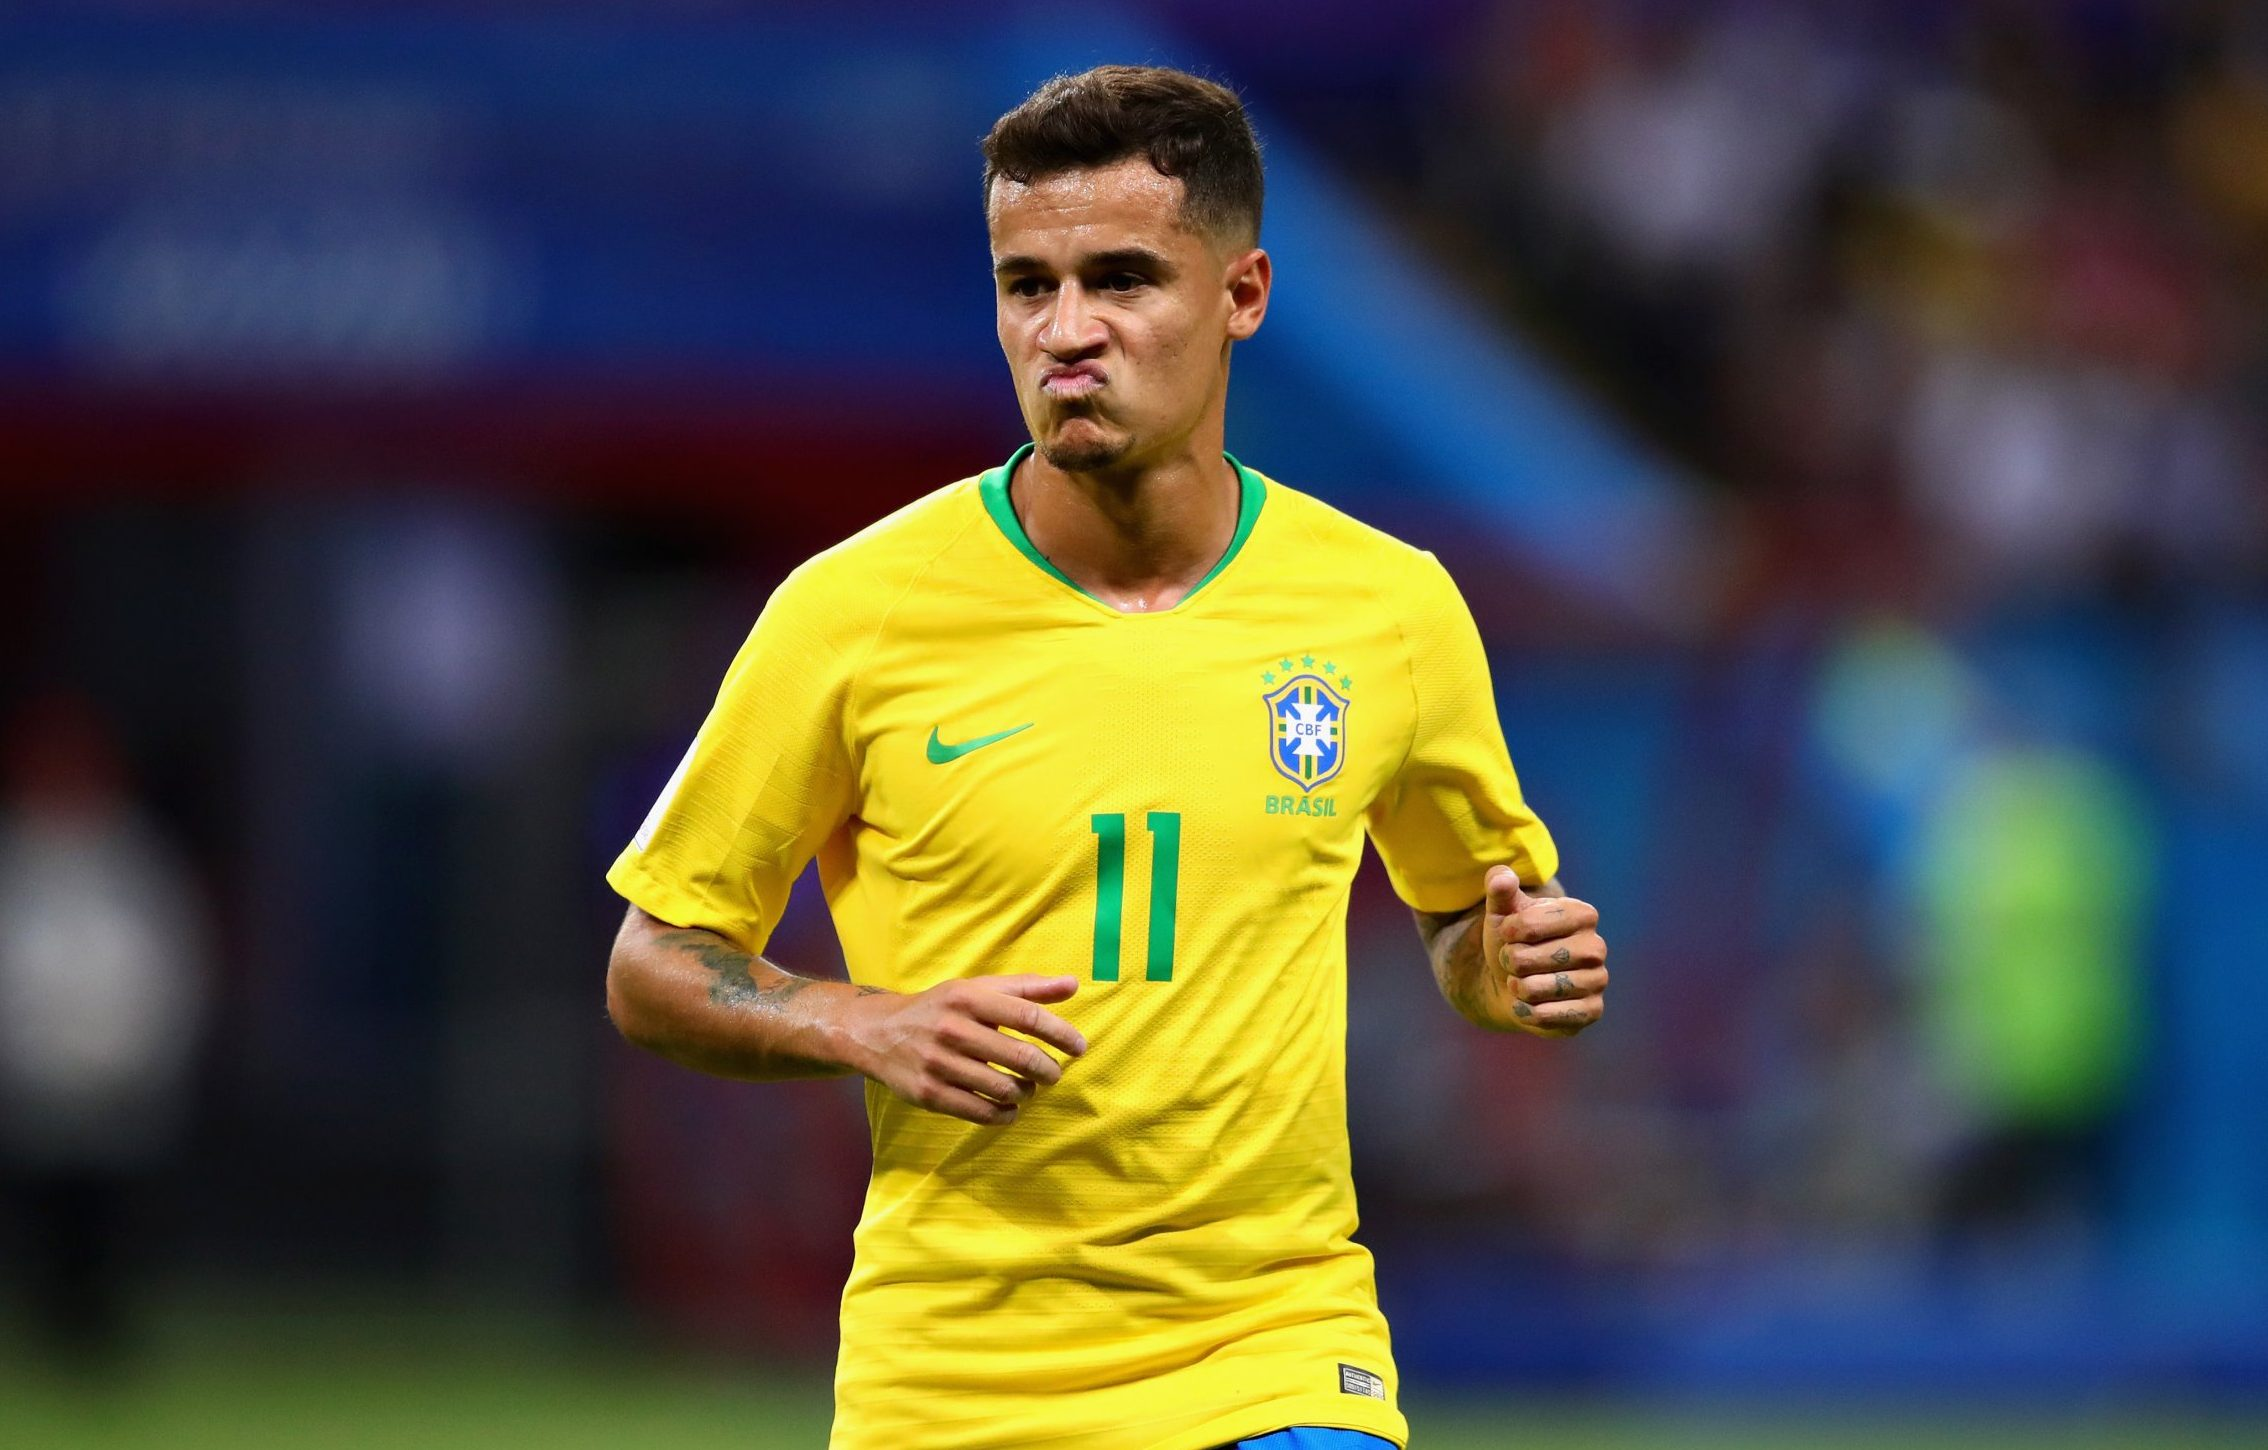 Barcelona receive €270m offer from PSG for Philippe Coutinho